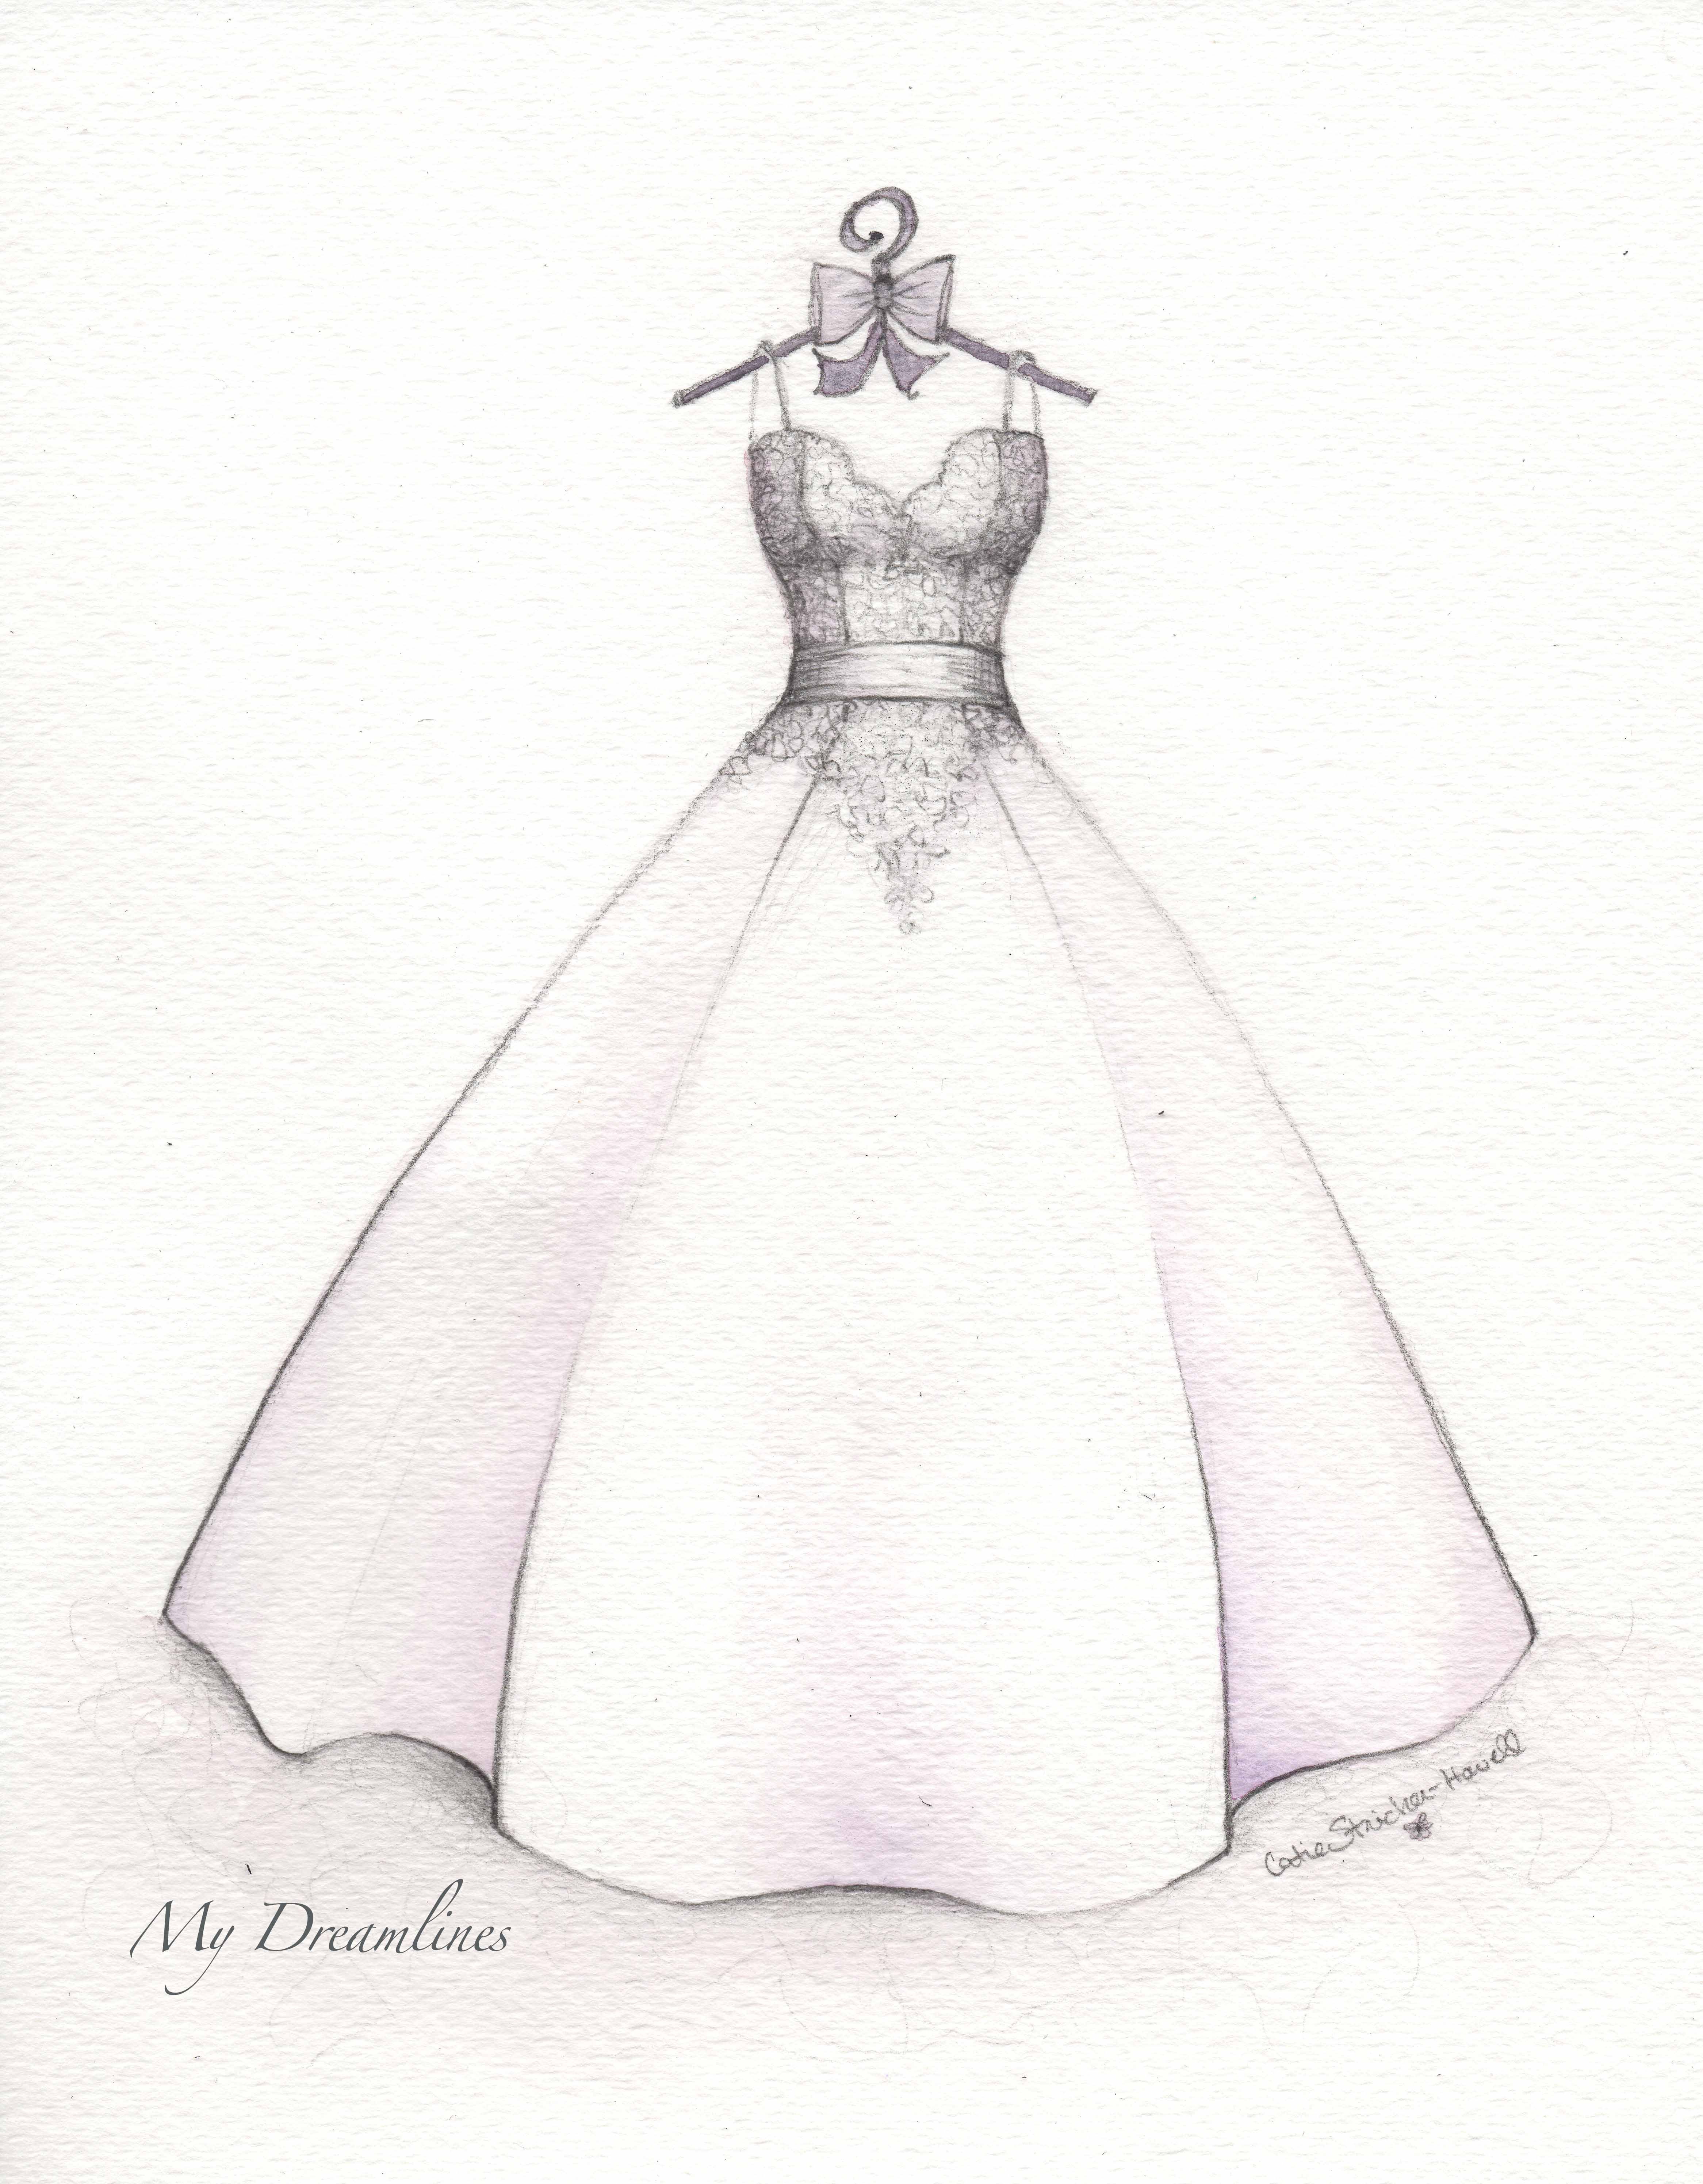 White dress drawing - First Anniversary Sketch Gift From The Husband To His Wife Sketch By Catie Stricker